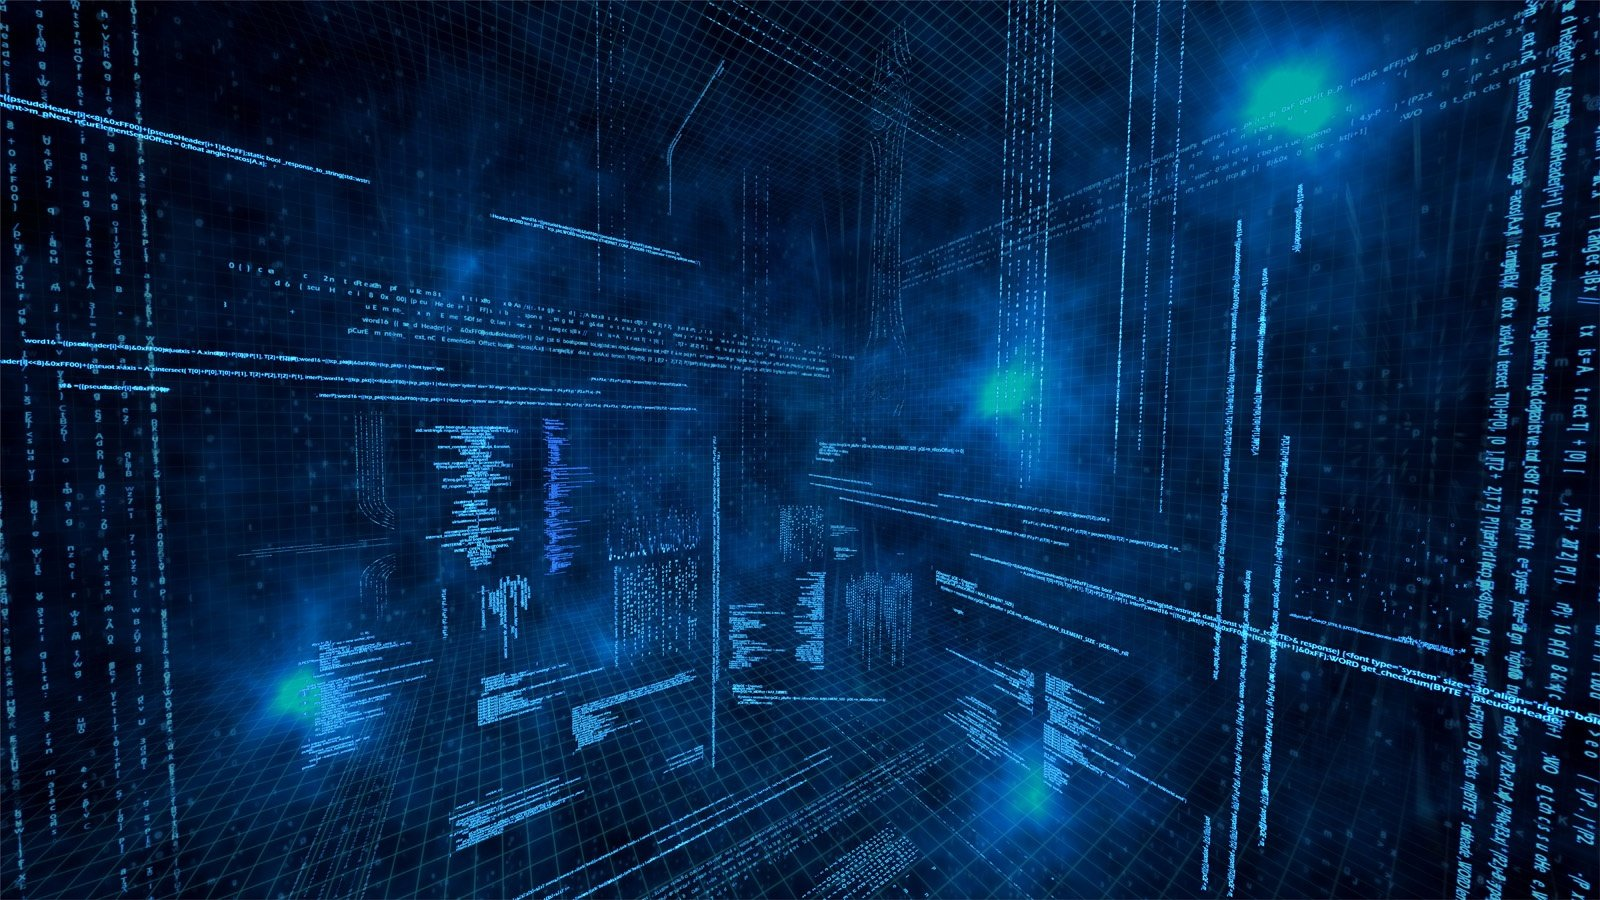 Bound for the moon: artificial intelligence in data centers